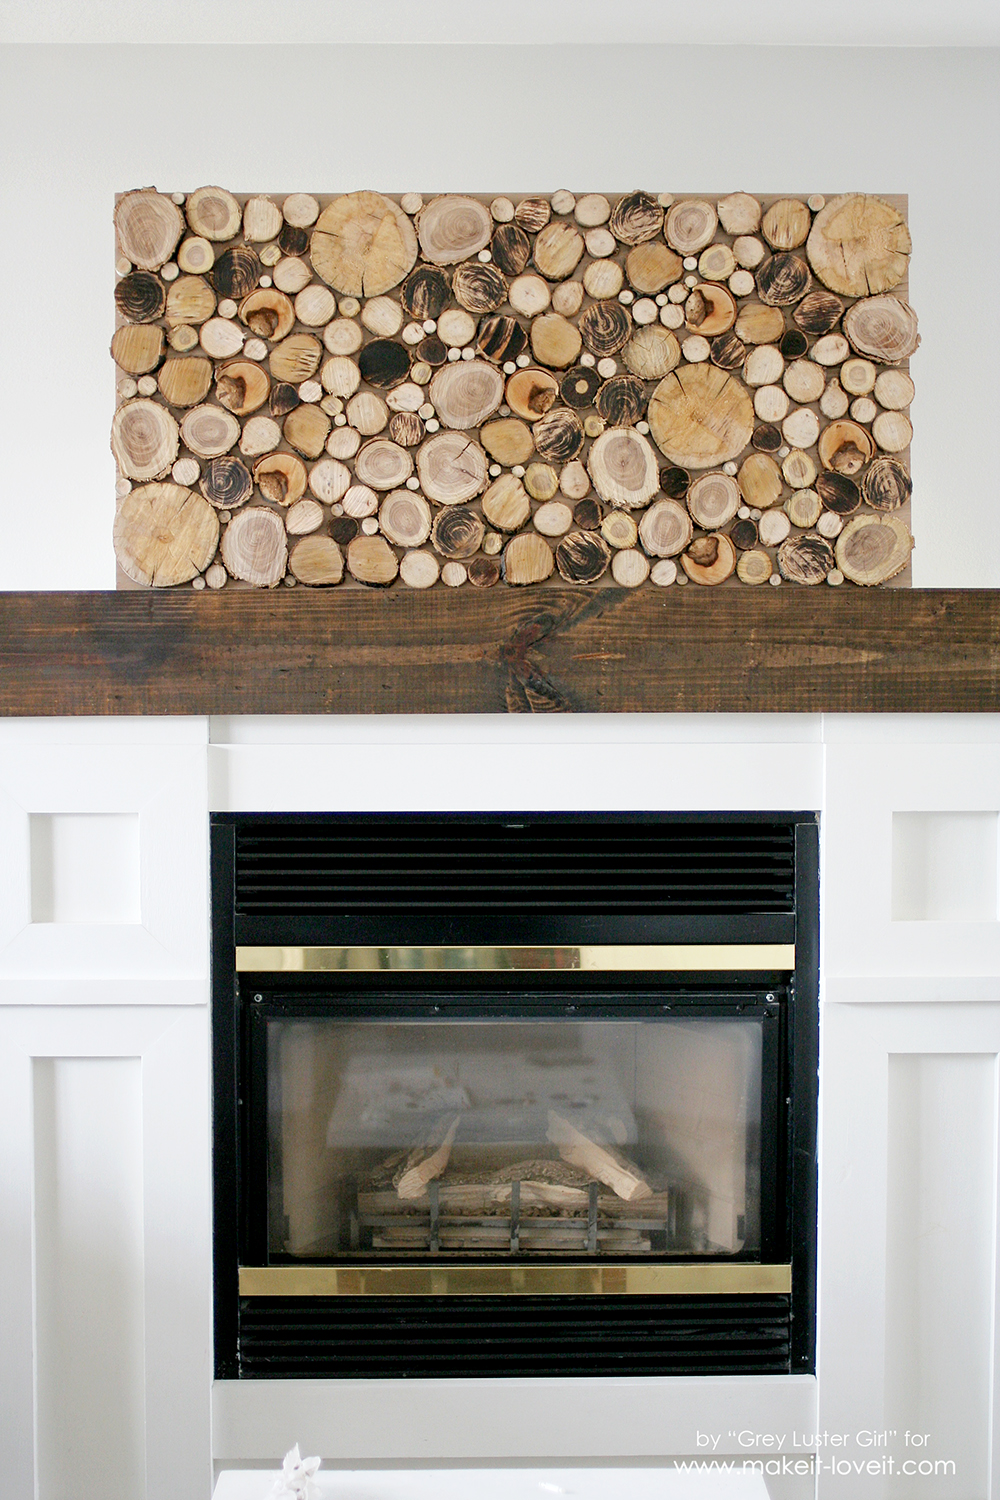 Thrifty Above Fireplace Decor - Wood Circles over Fireplace